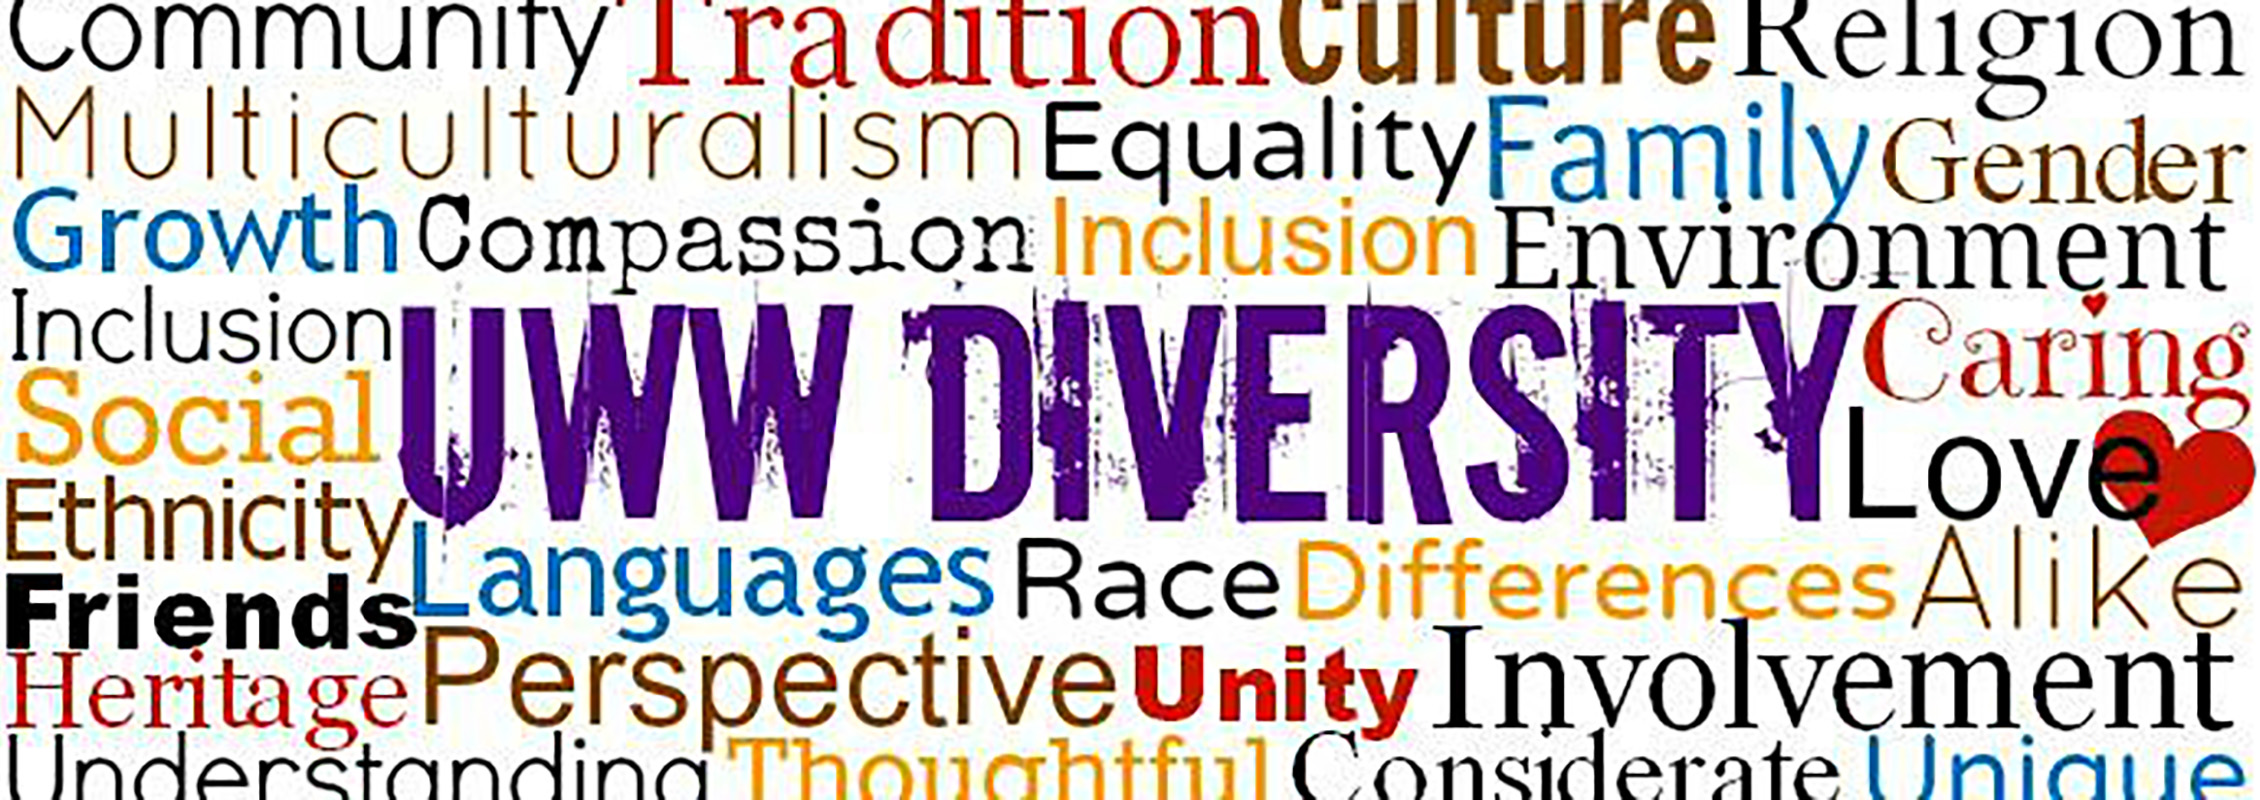 Inclusive excellence at UW-Whitewater